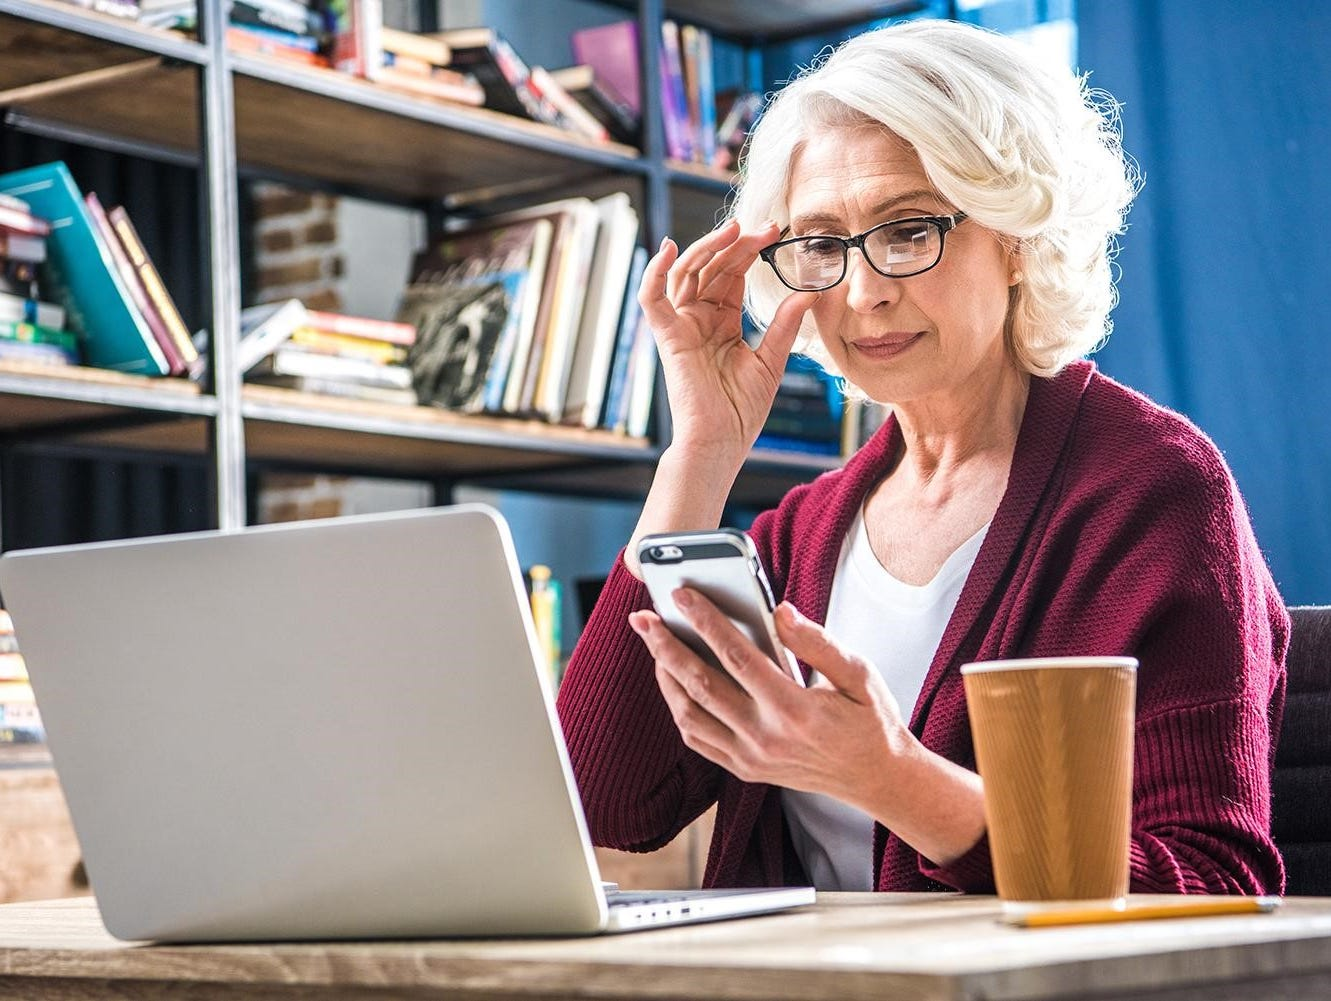 Retirement isn't about just doing nothing. Read the 15 jobs that are perfect for many retirees.